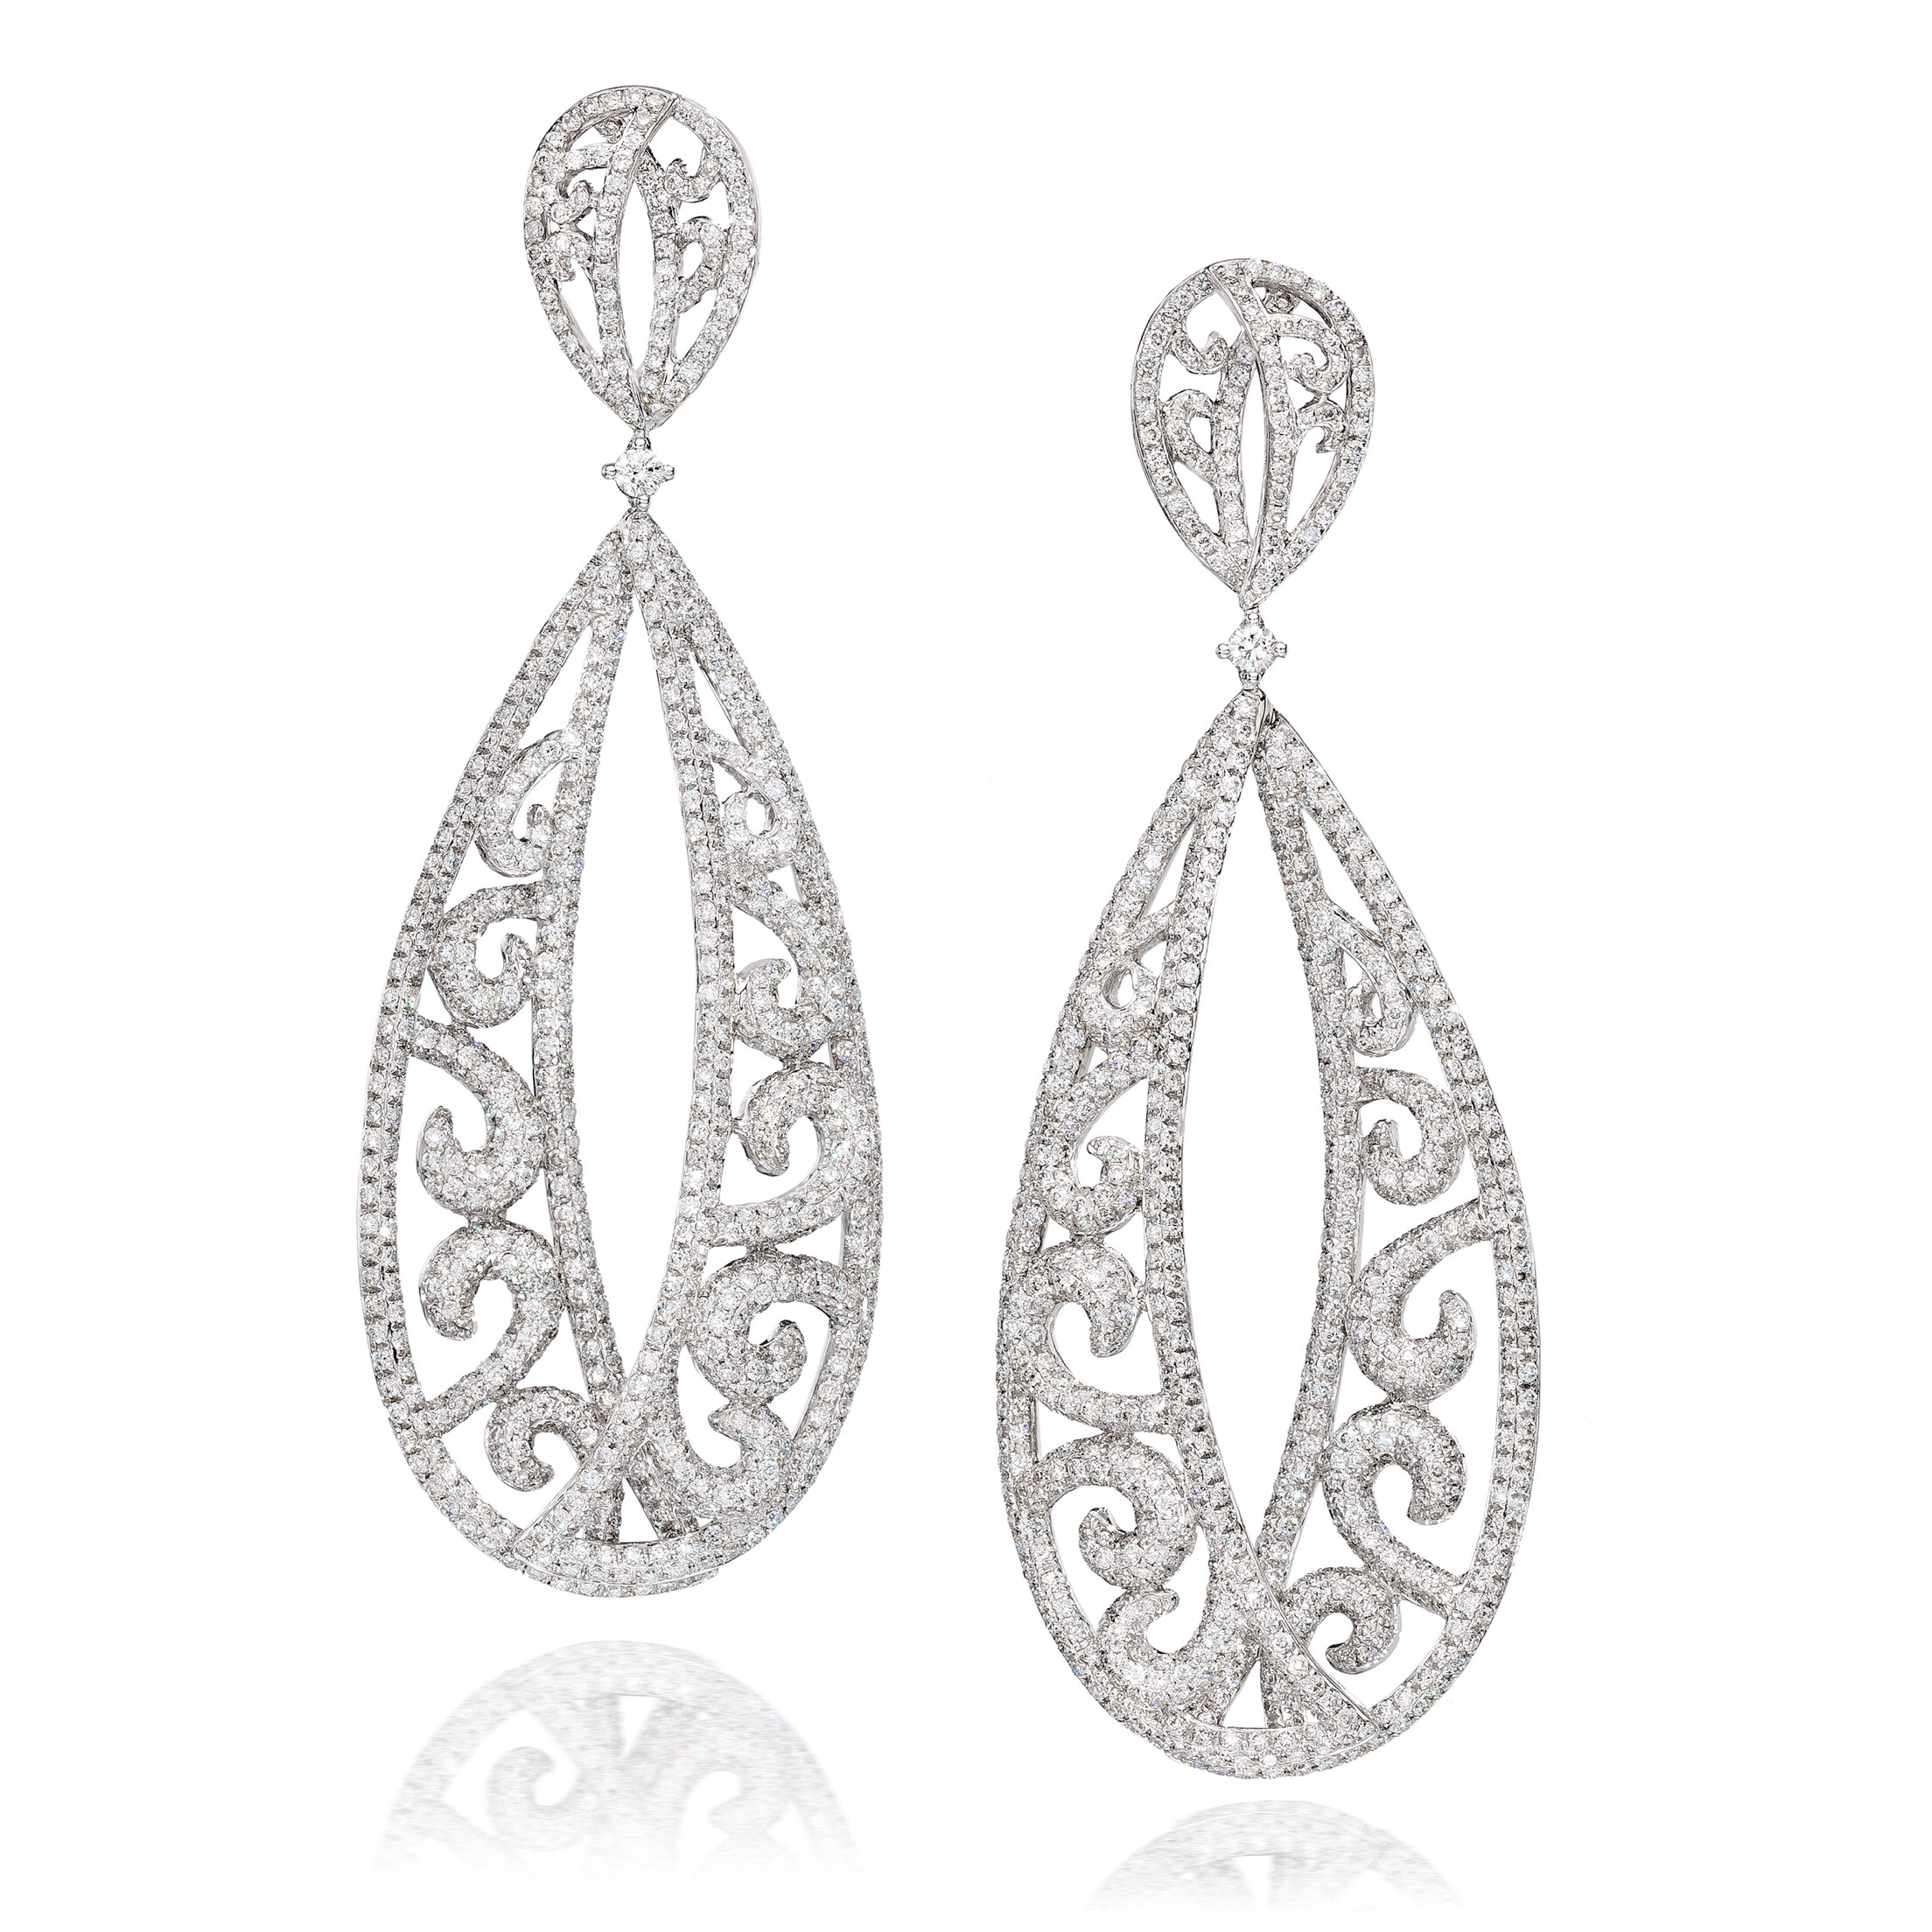 Jennifer Lopez presents her third collection of jewelry